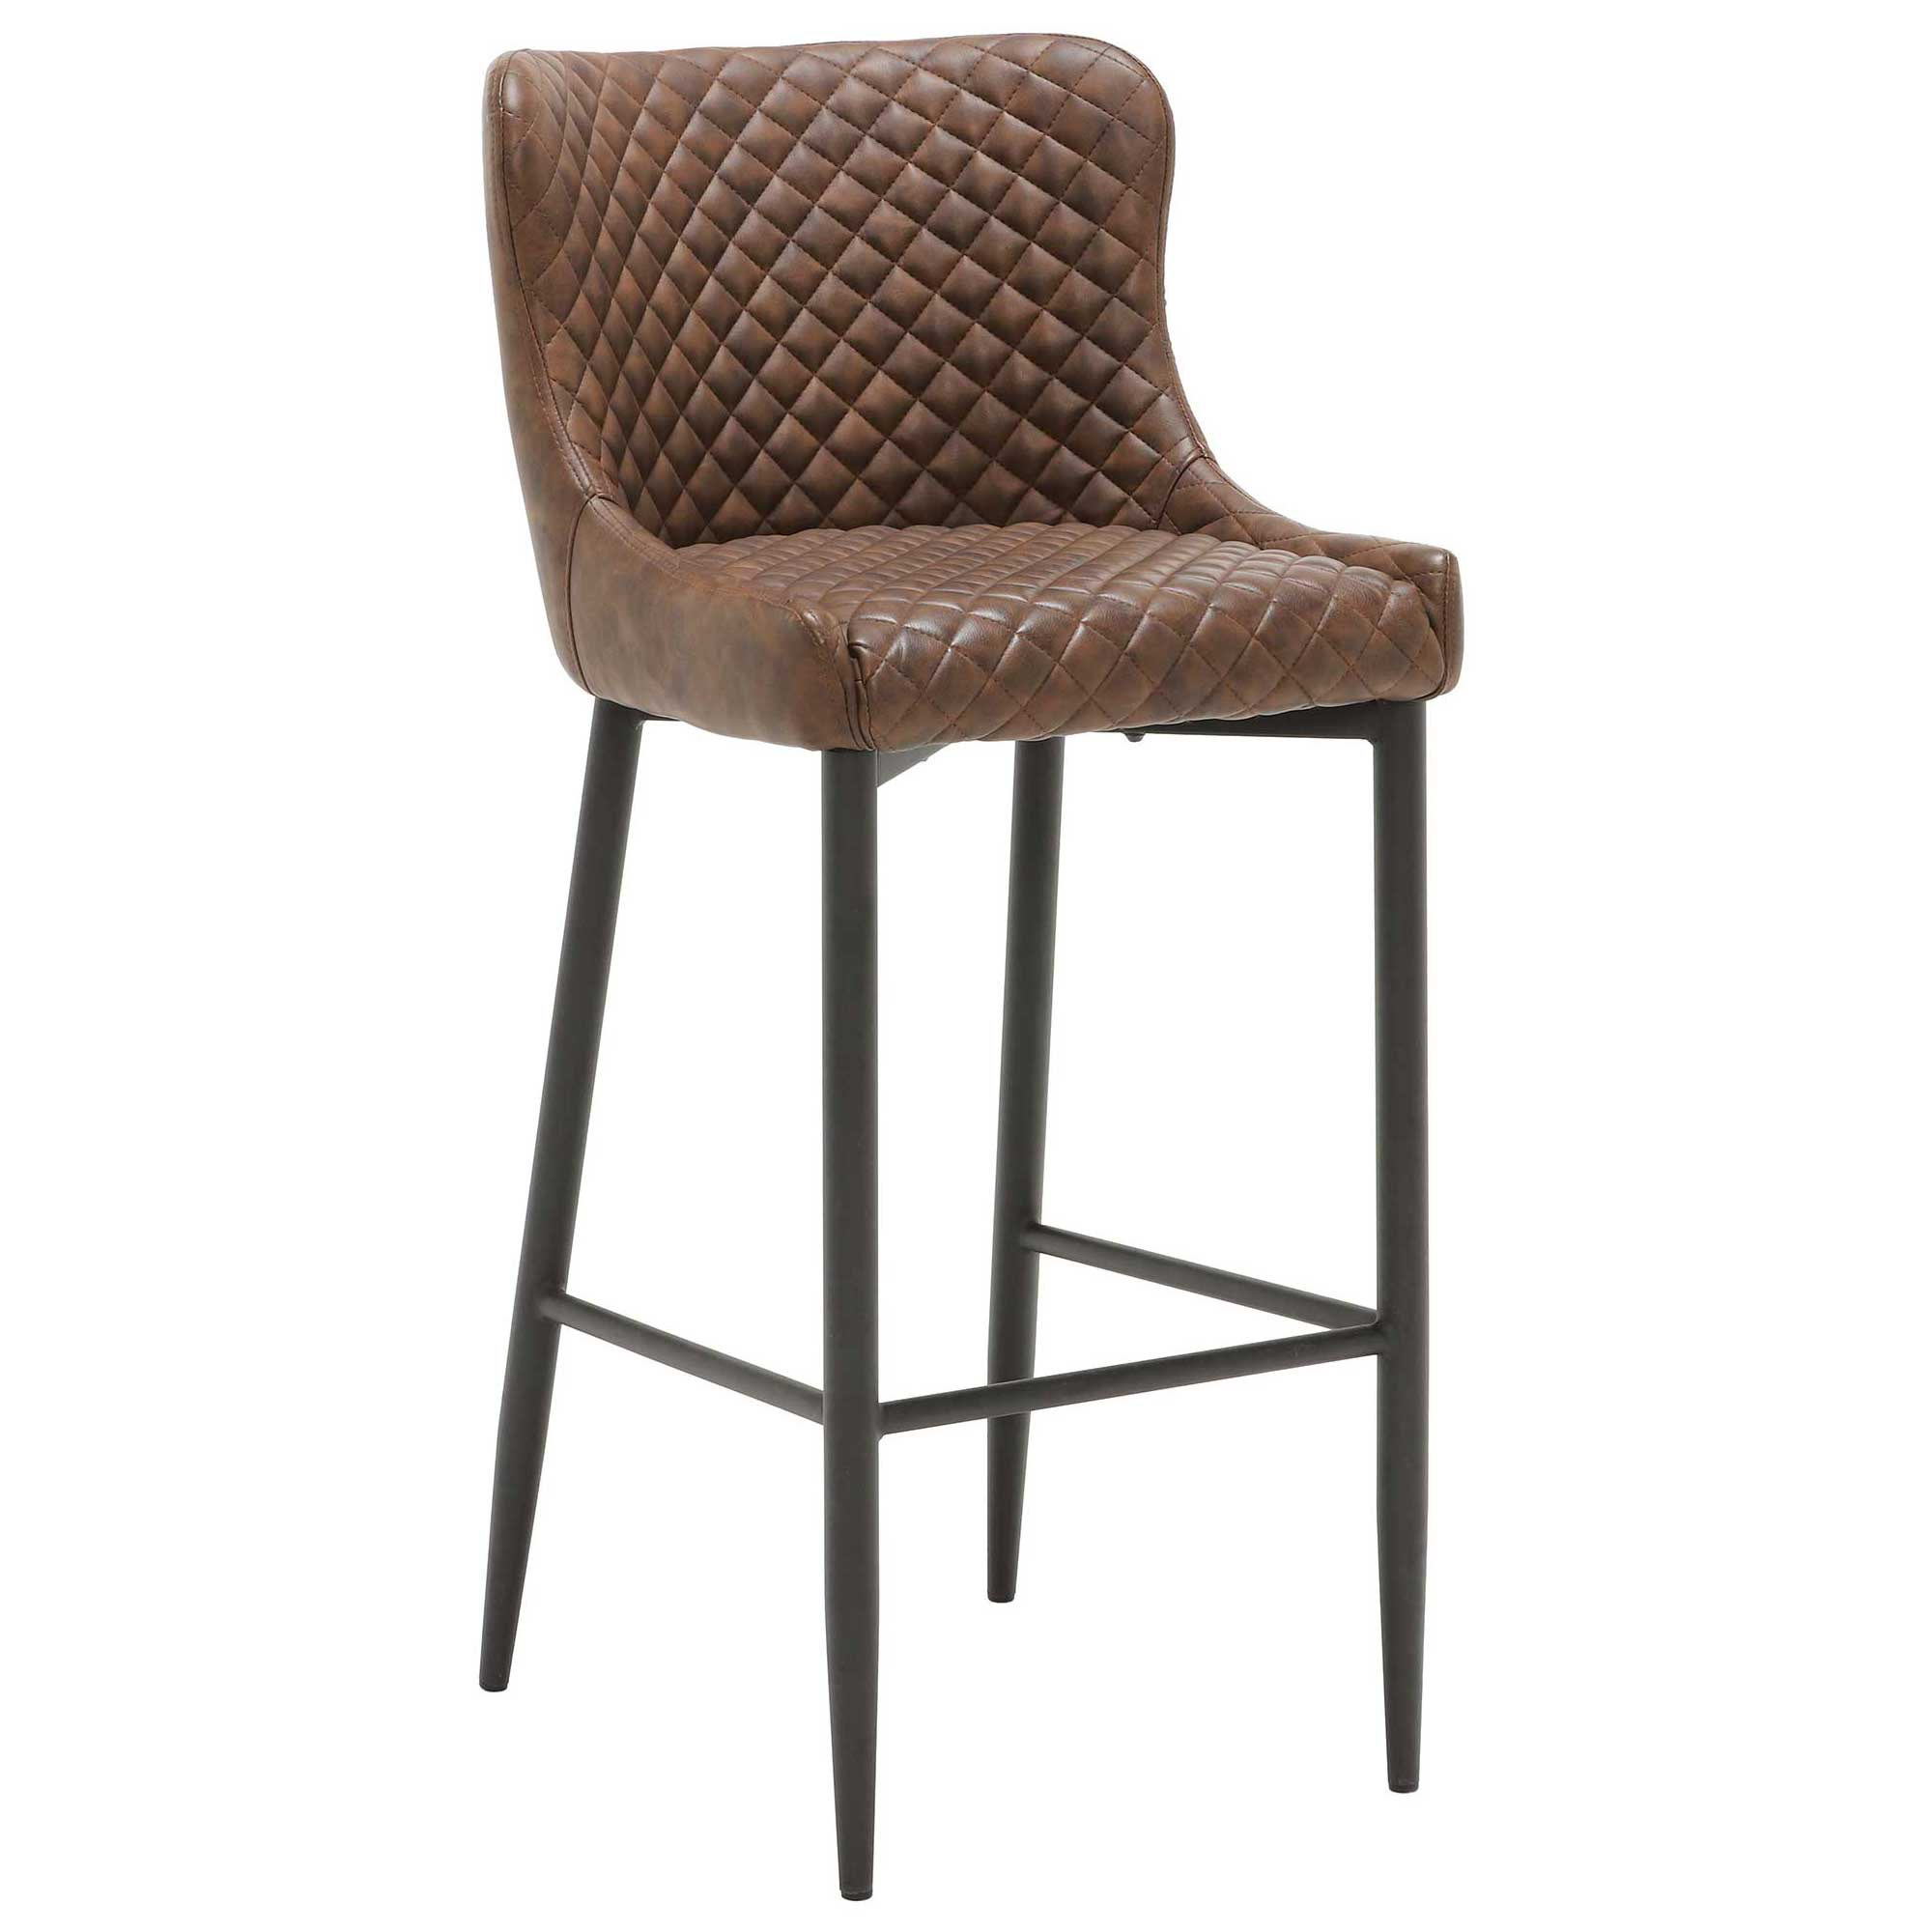 UPHOLSTERED BAR STOOL Brown Faux Leather